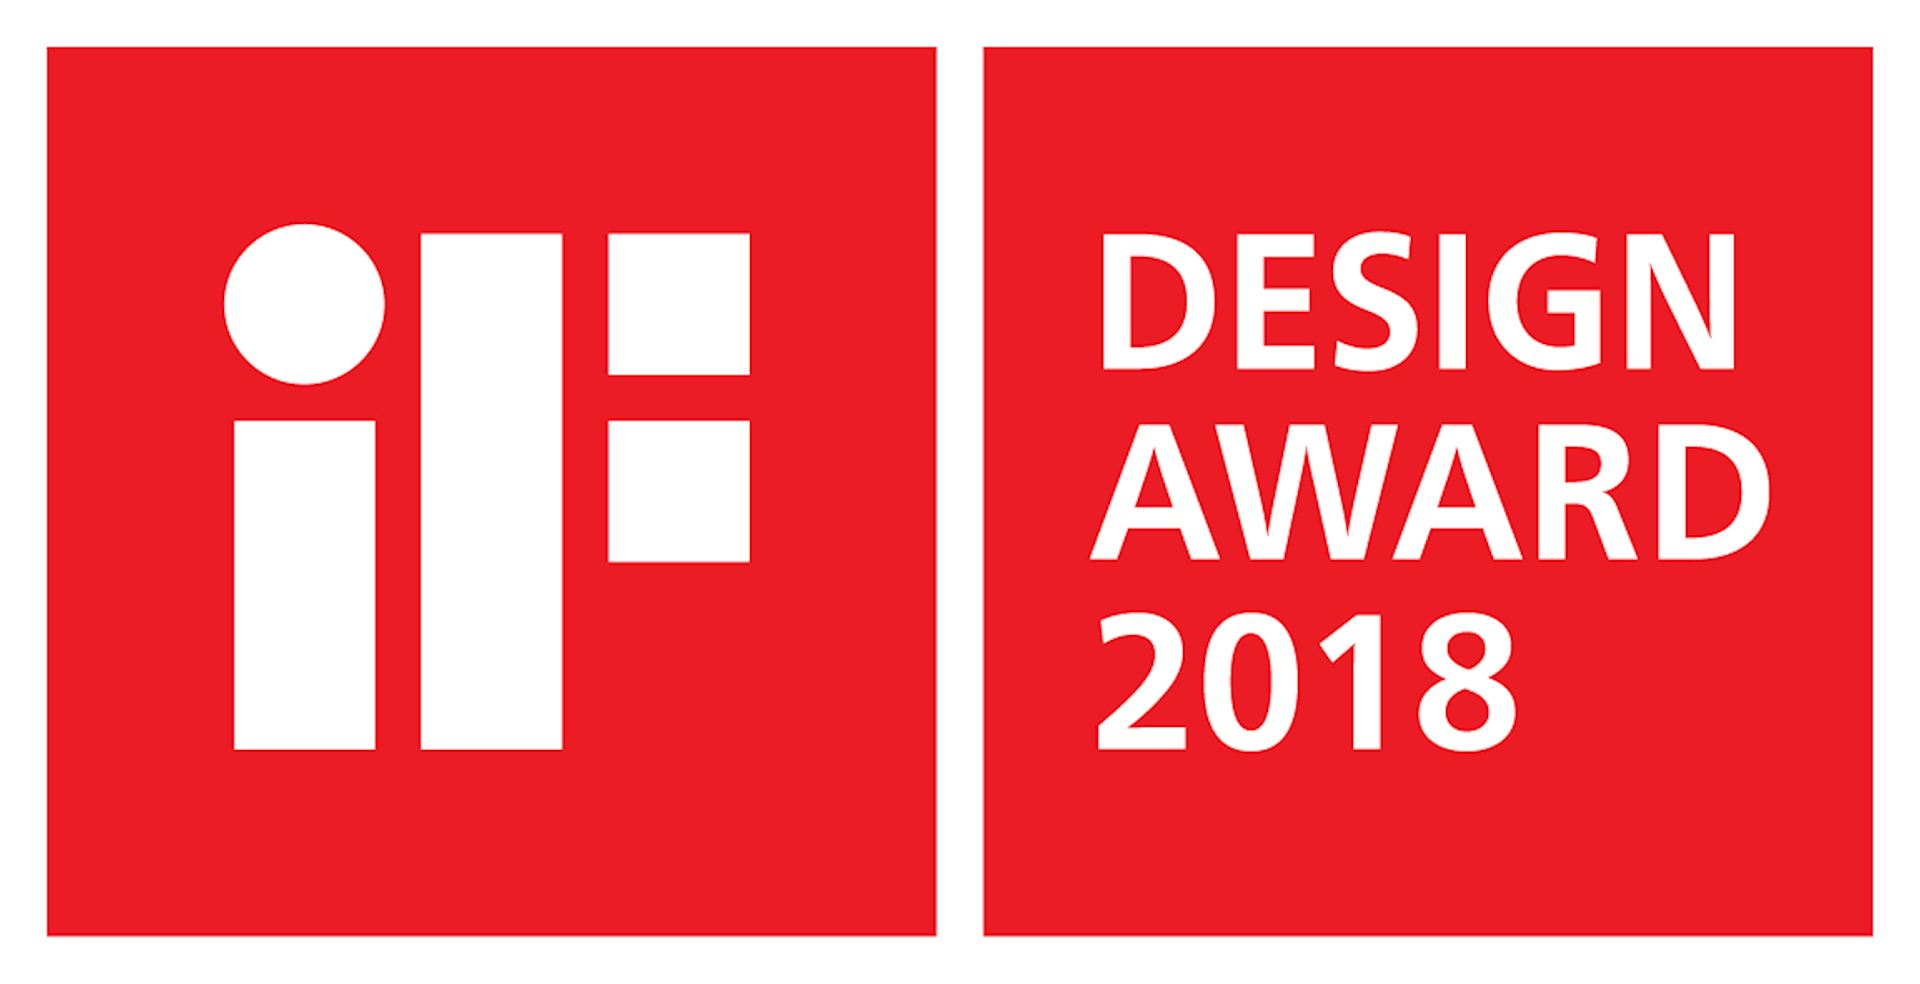 Winner iF DESIGN AWARD 2018